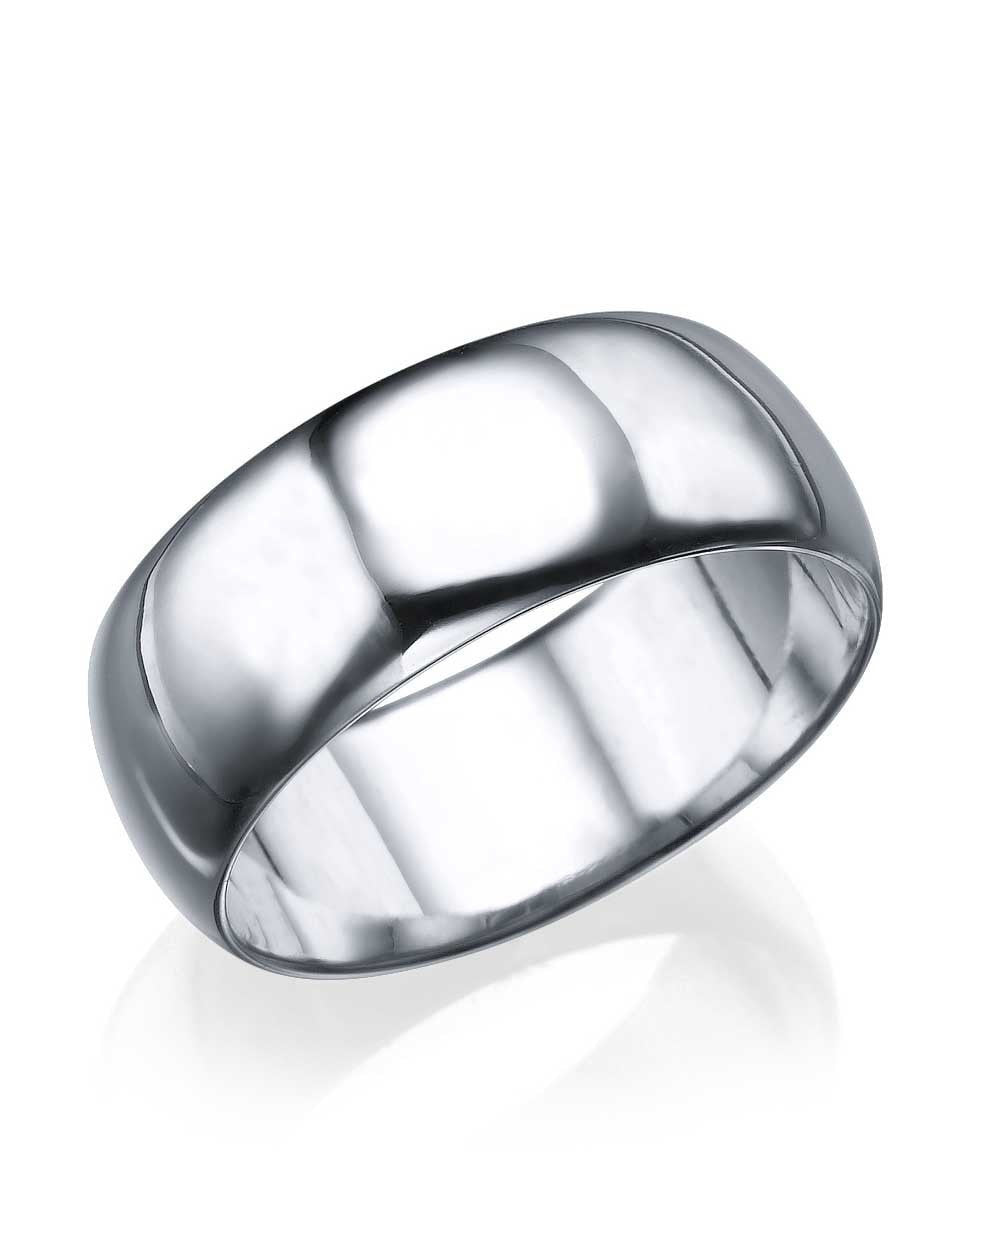 Wedding Rings White Gold Wedding Ring - 7.7mm Rounded Plain Band